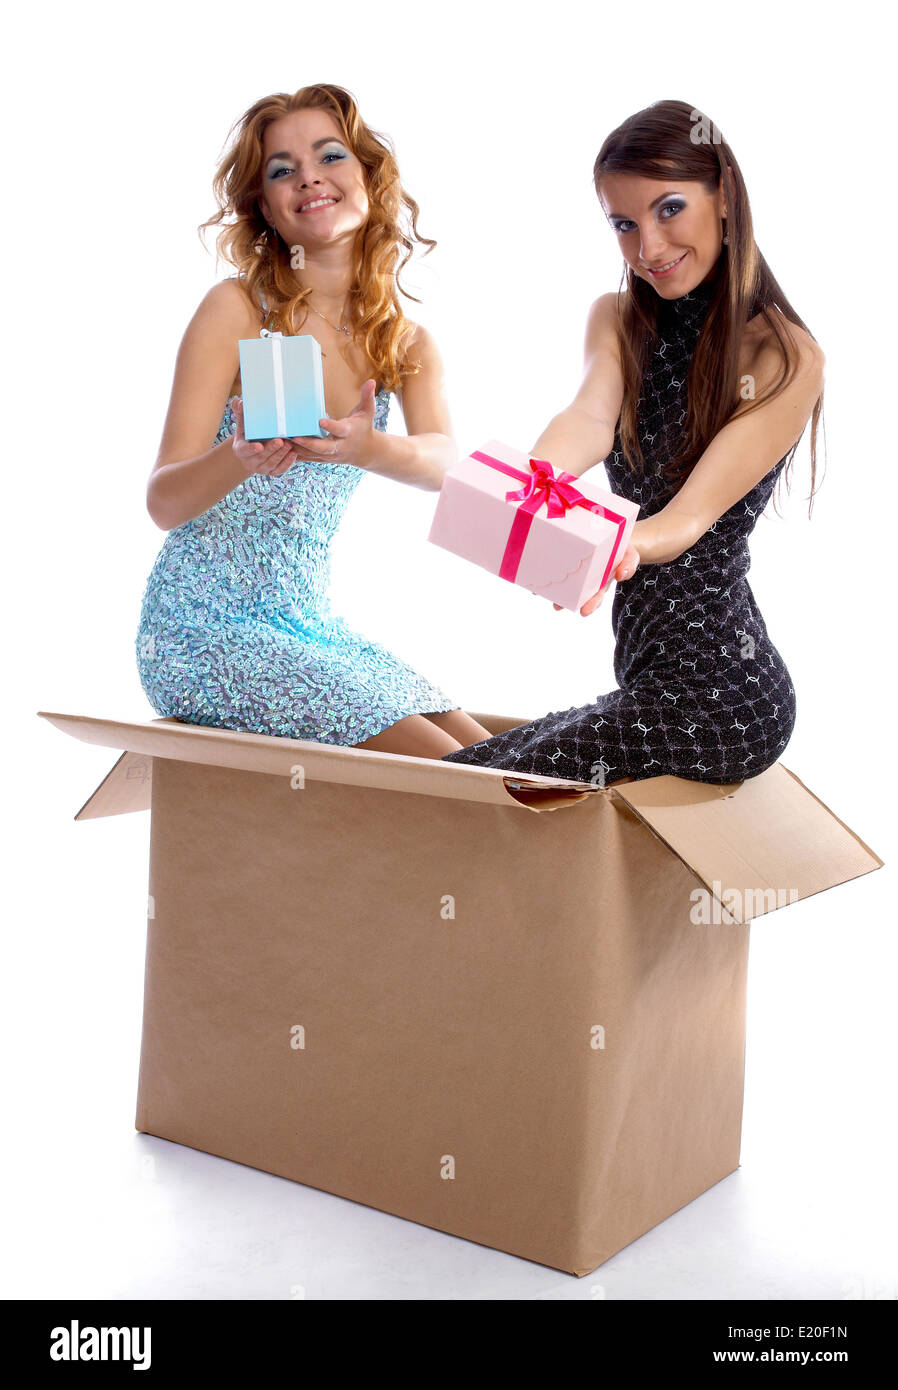 models with presents - Stock Image